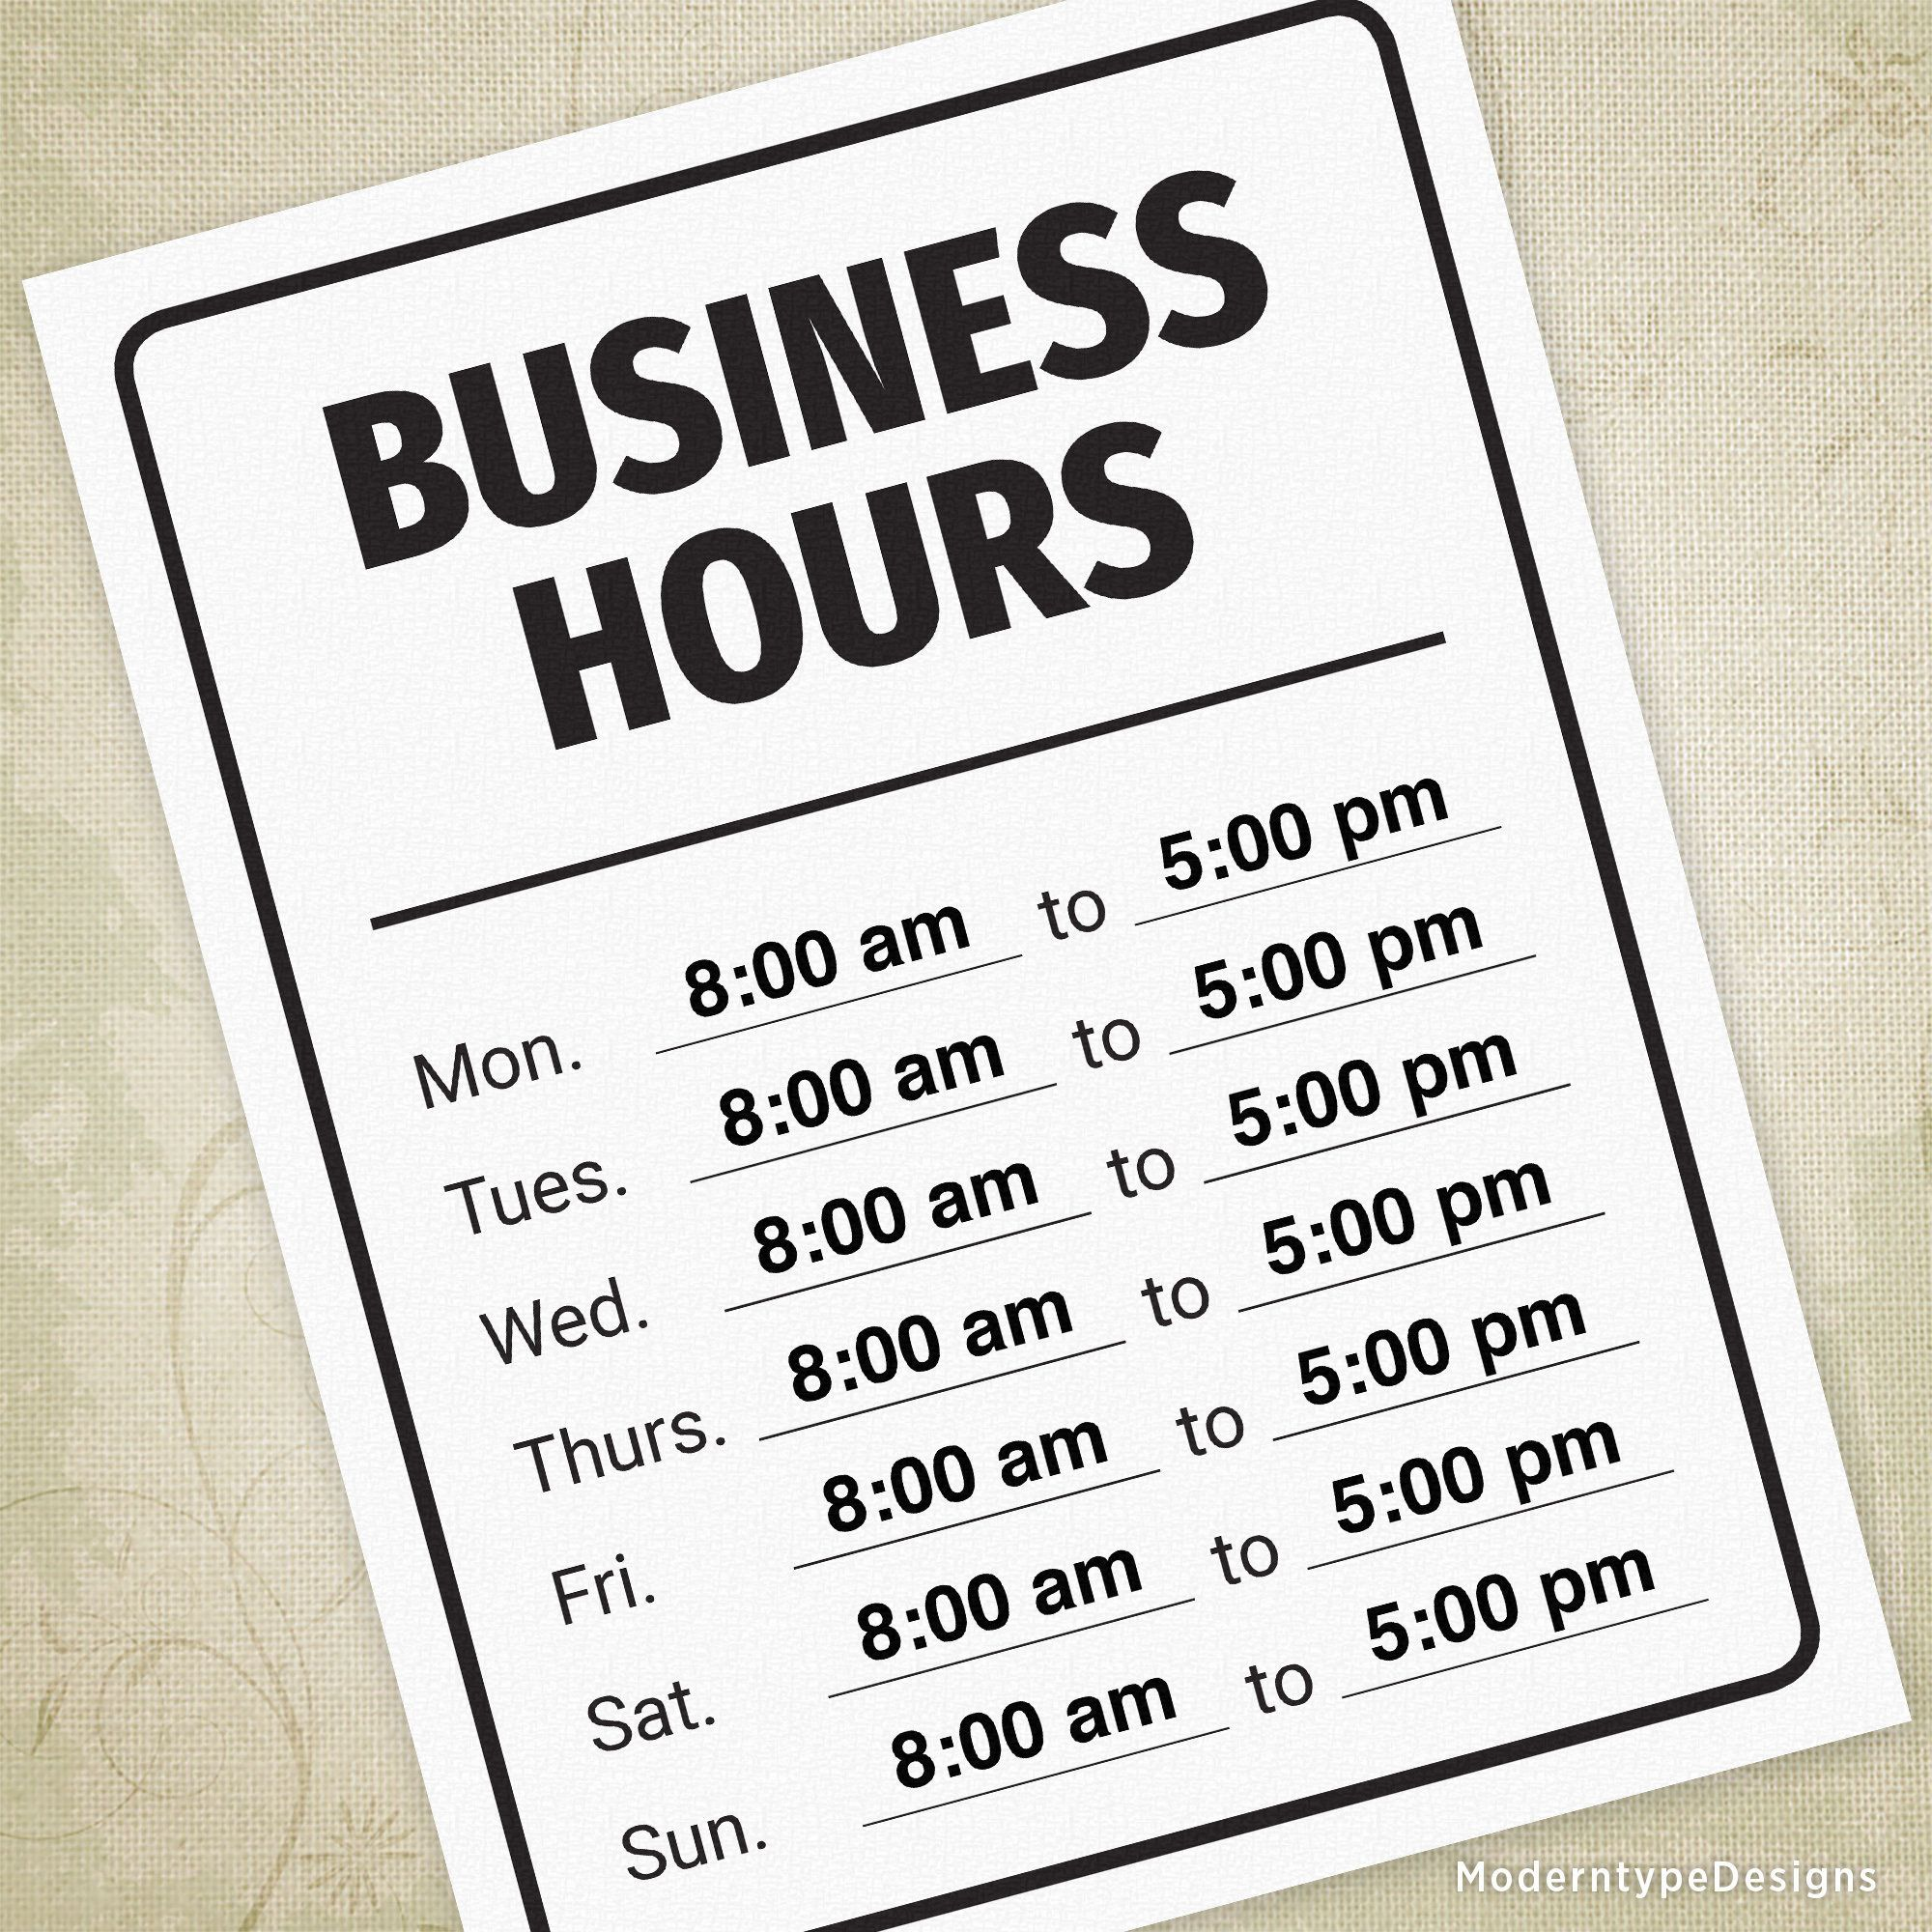 Business Hours Printable Sign Operation Professional Open Etsy In 2021 Business Hours Sign Printable Signs Business Hours Sign Template